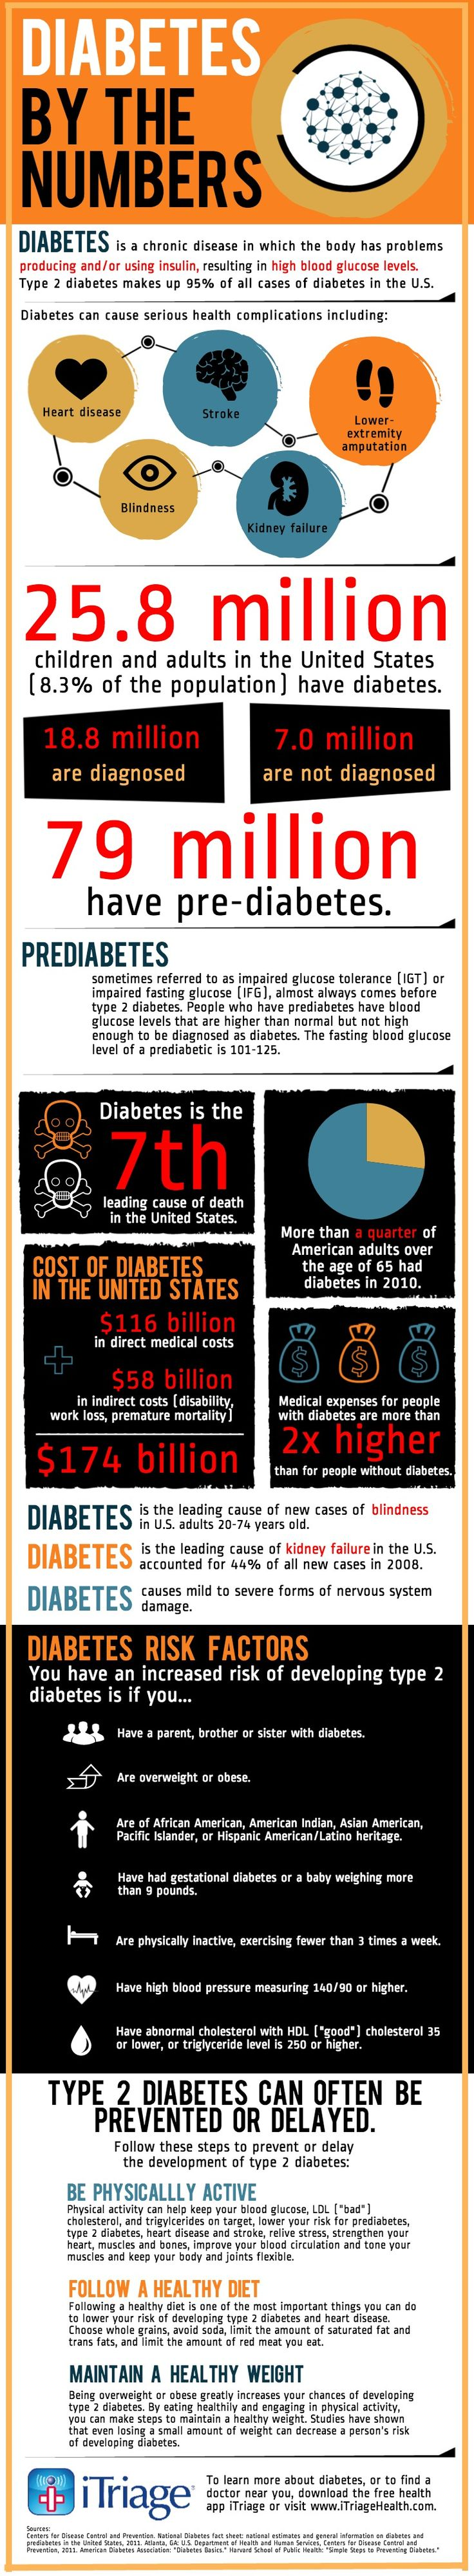 Diabetes By the Numbers (Infographic) | New Visions Healthcare Blog